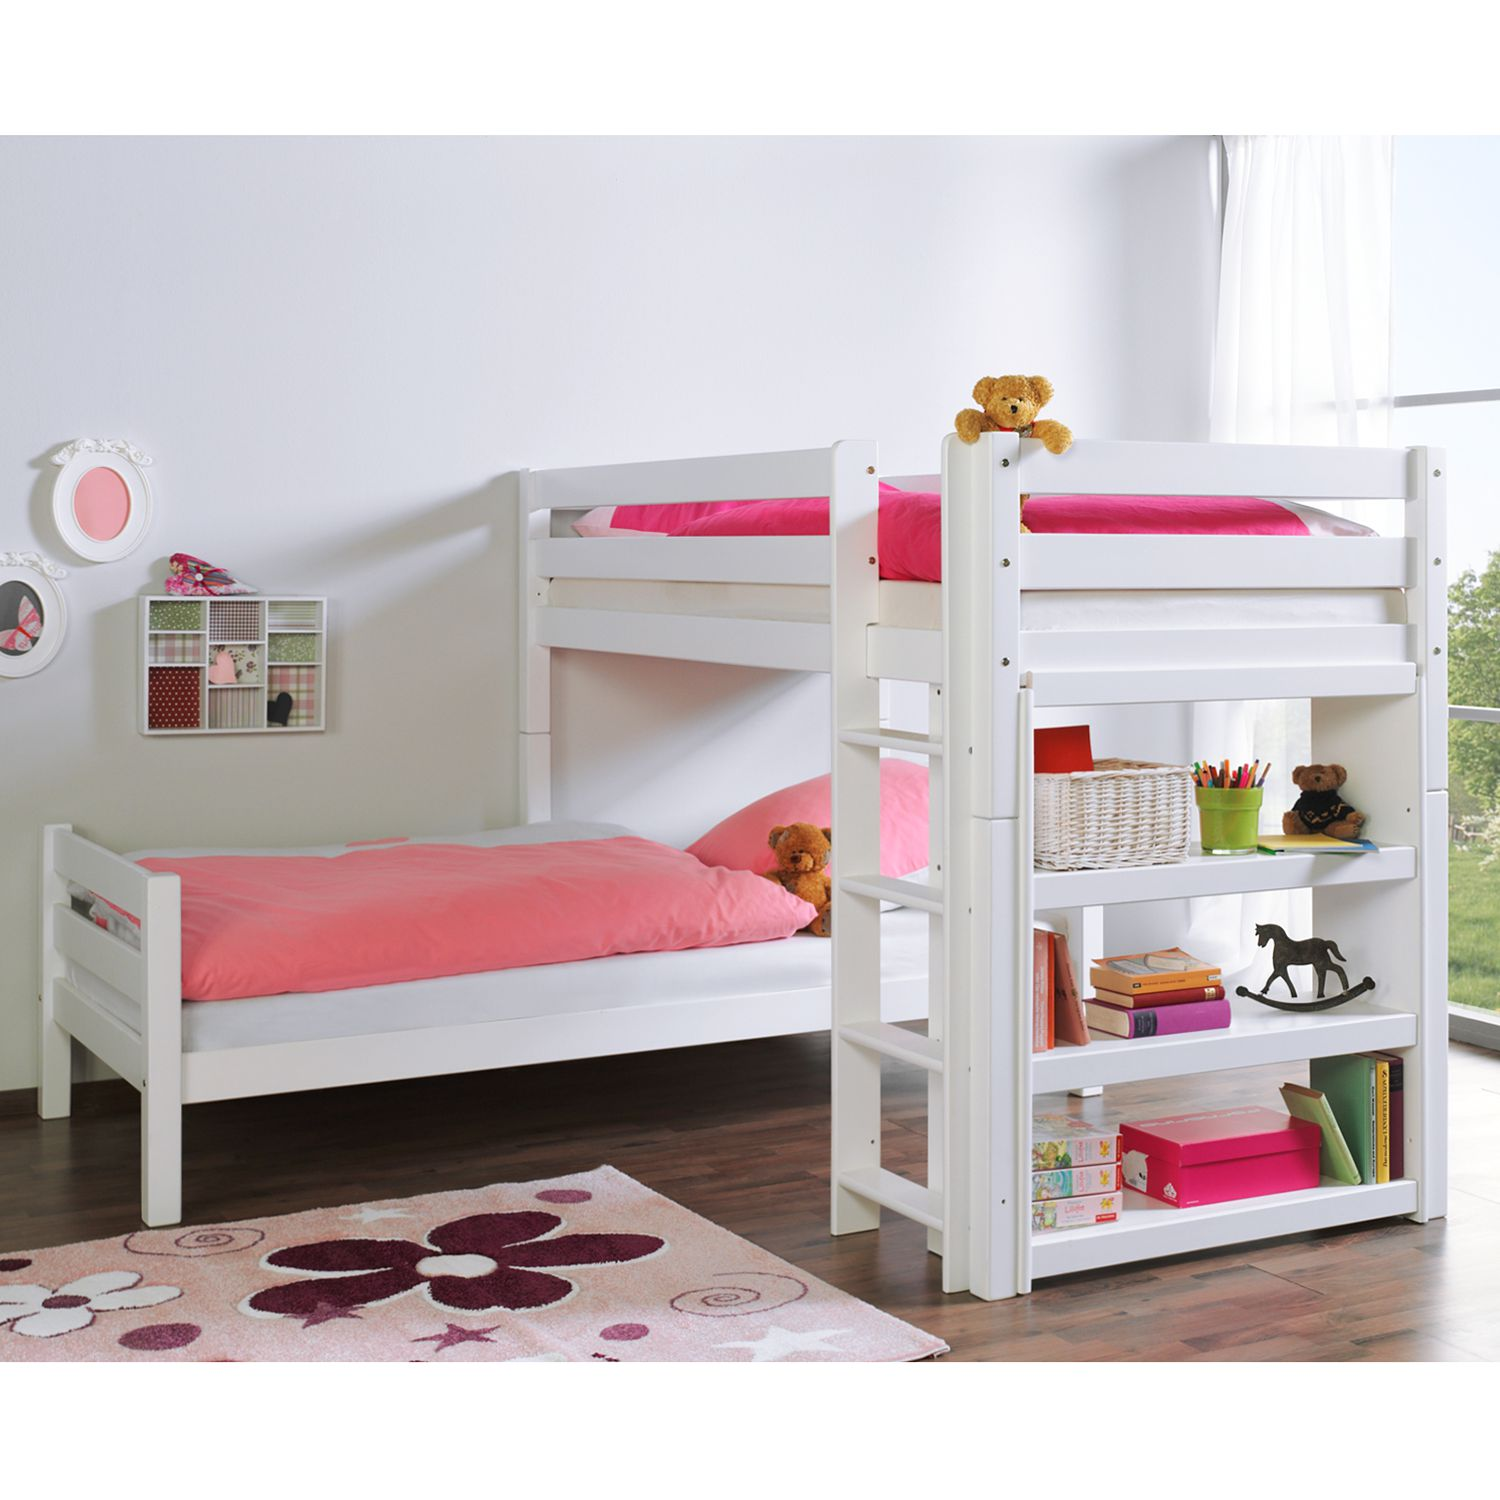 relita etagenbett beni massivholz buche wei l kinder bett hochbett jugendbett ebay. Black Bedroom Furniture Sets. Home Design Ideas